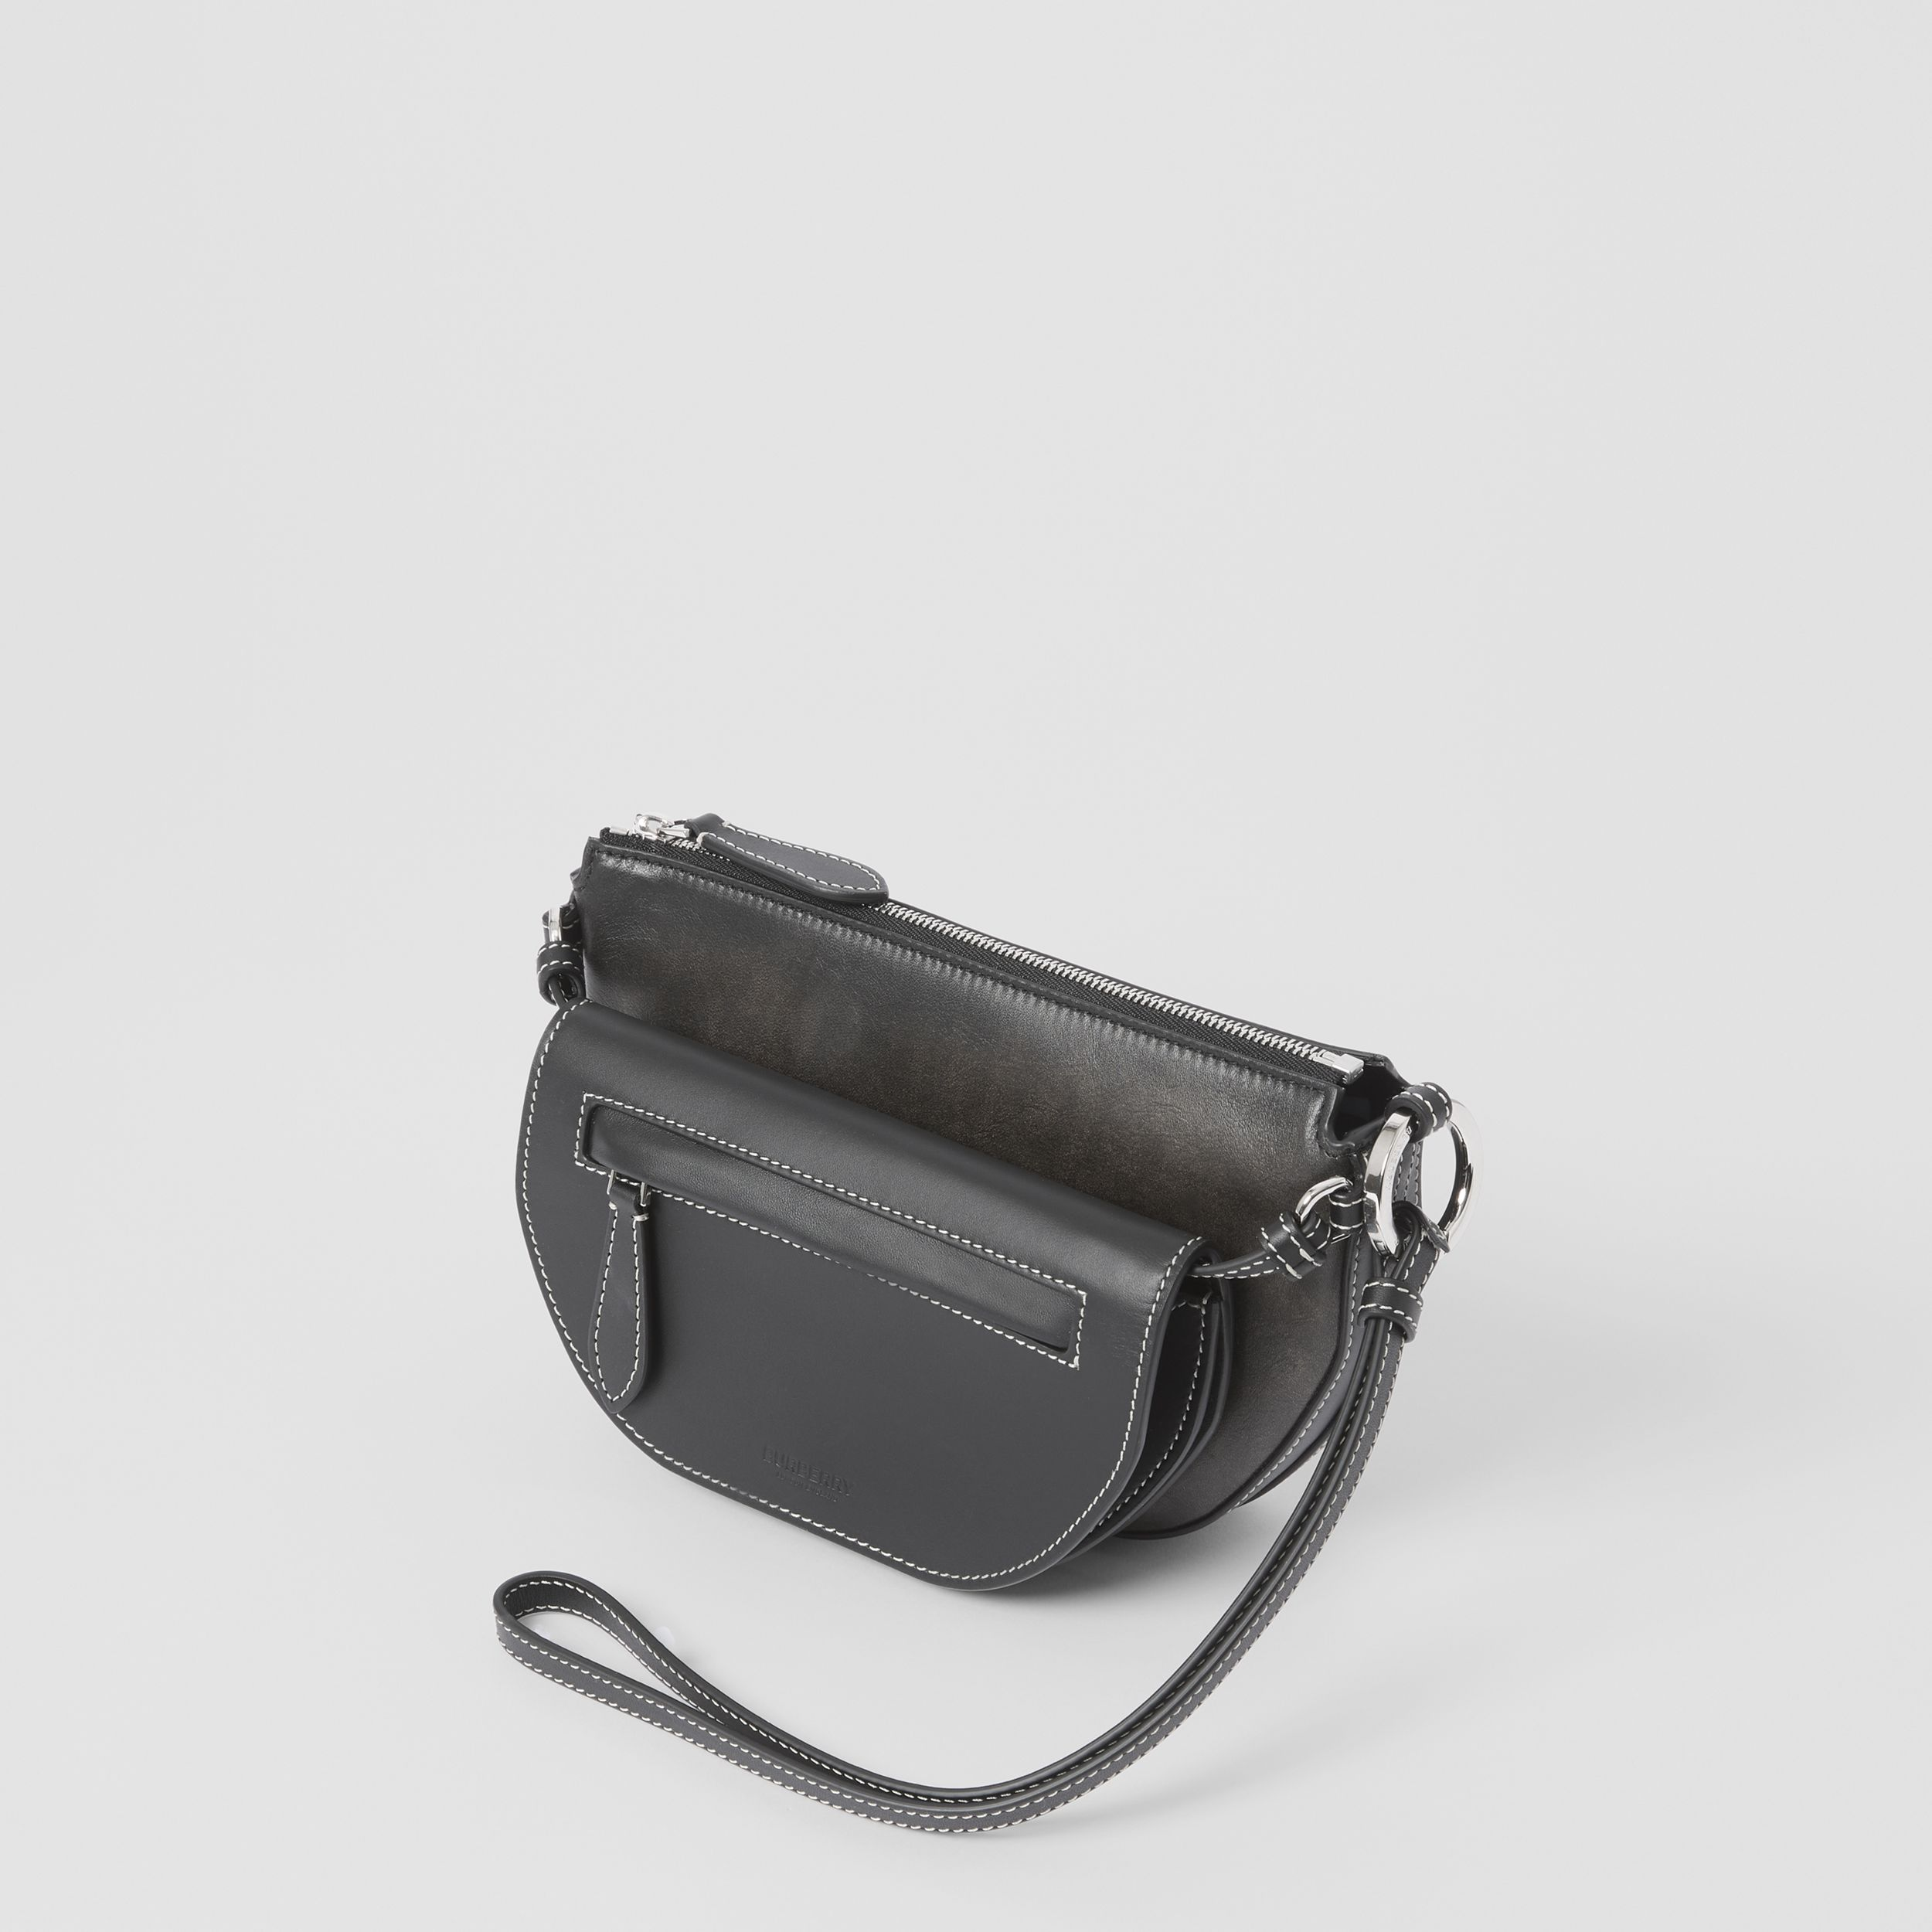 Mini Leather Double Olympia Bag in Black - Women | Burberry United States - 3